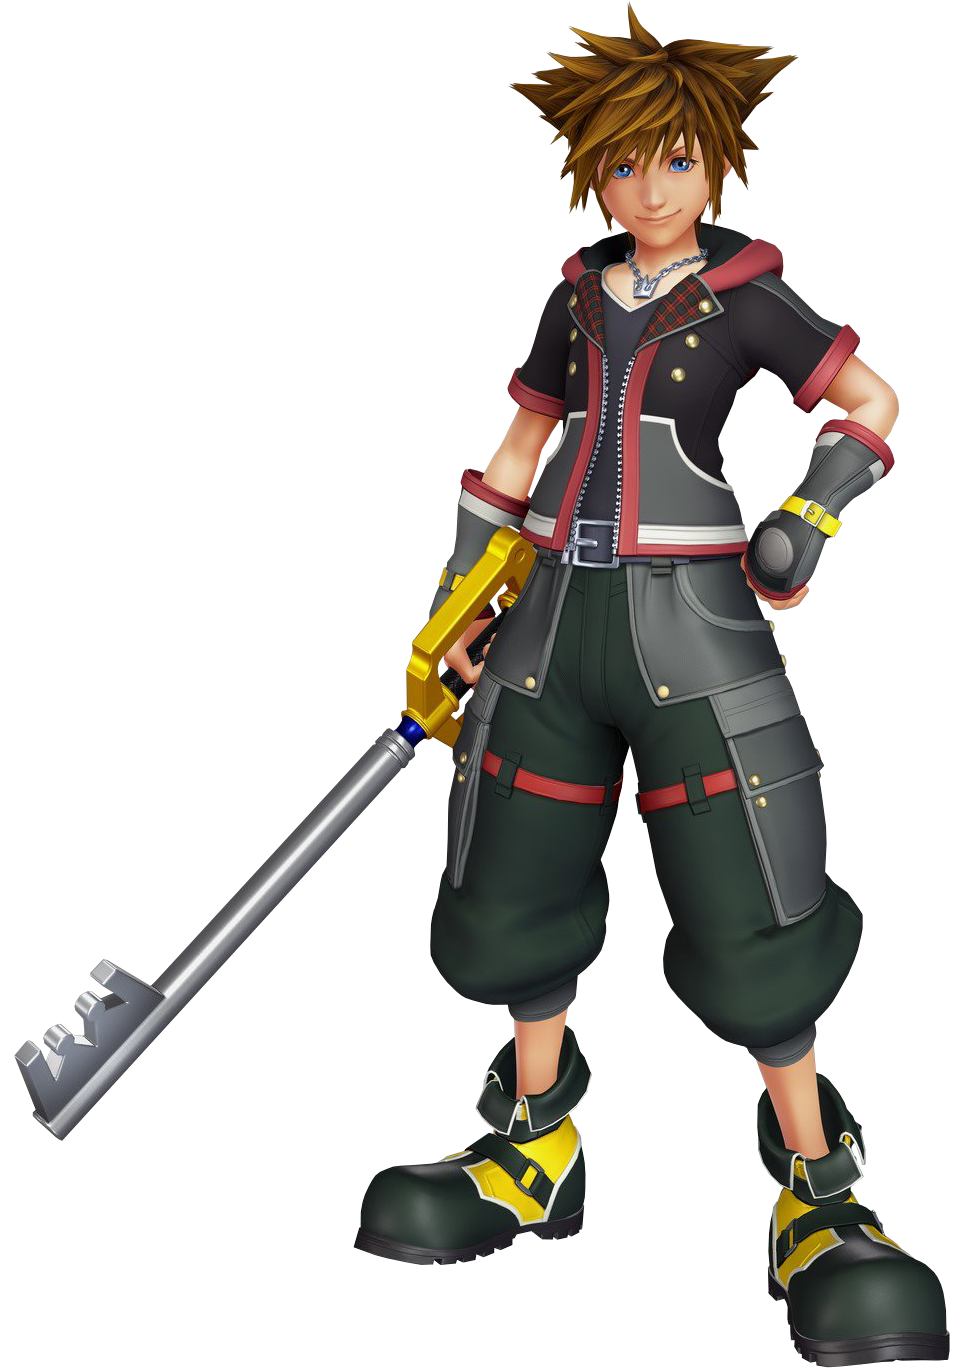 Image Result For Kingdom Hearts Disney Wiki Fandom Powered By Wikia